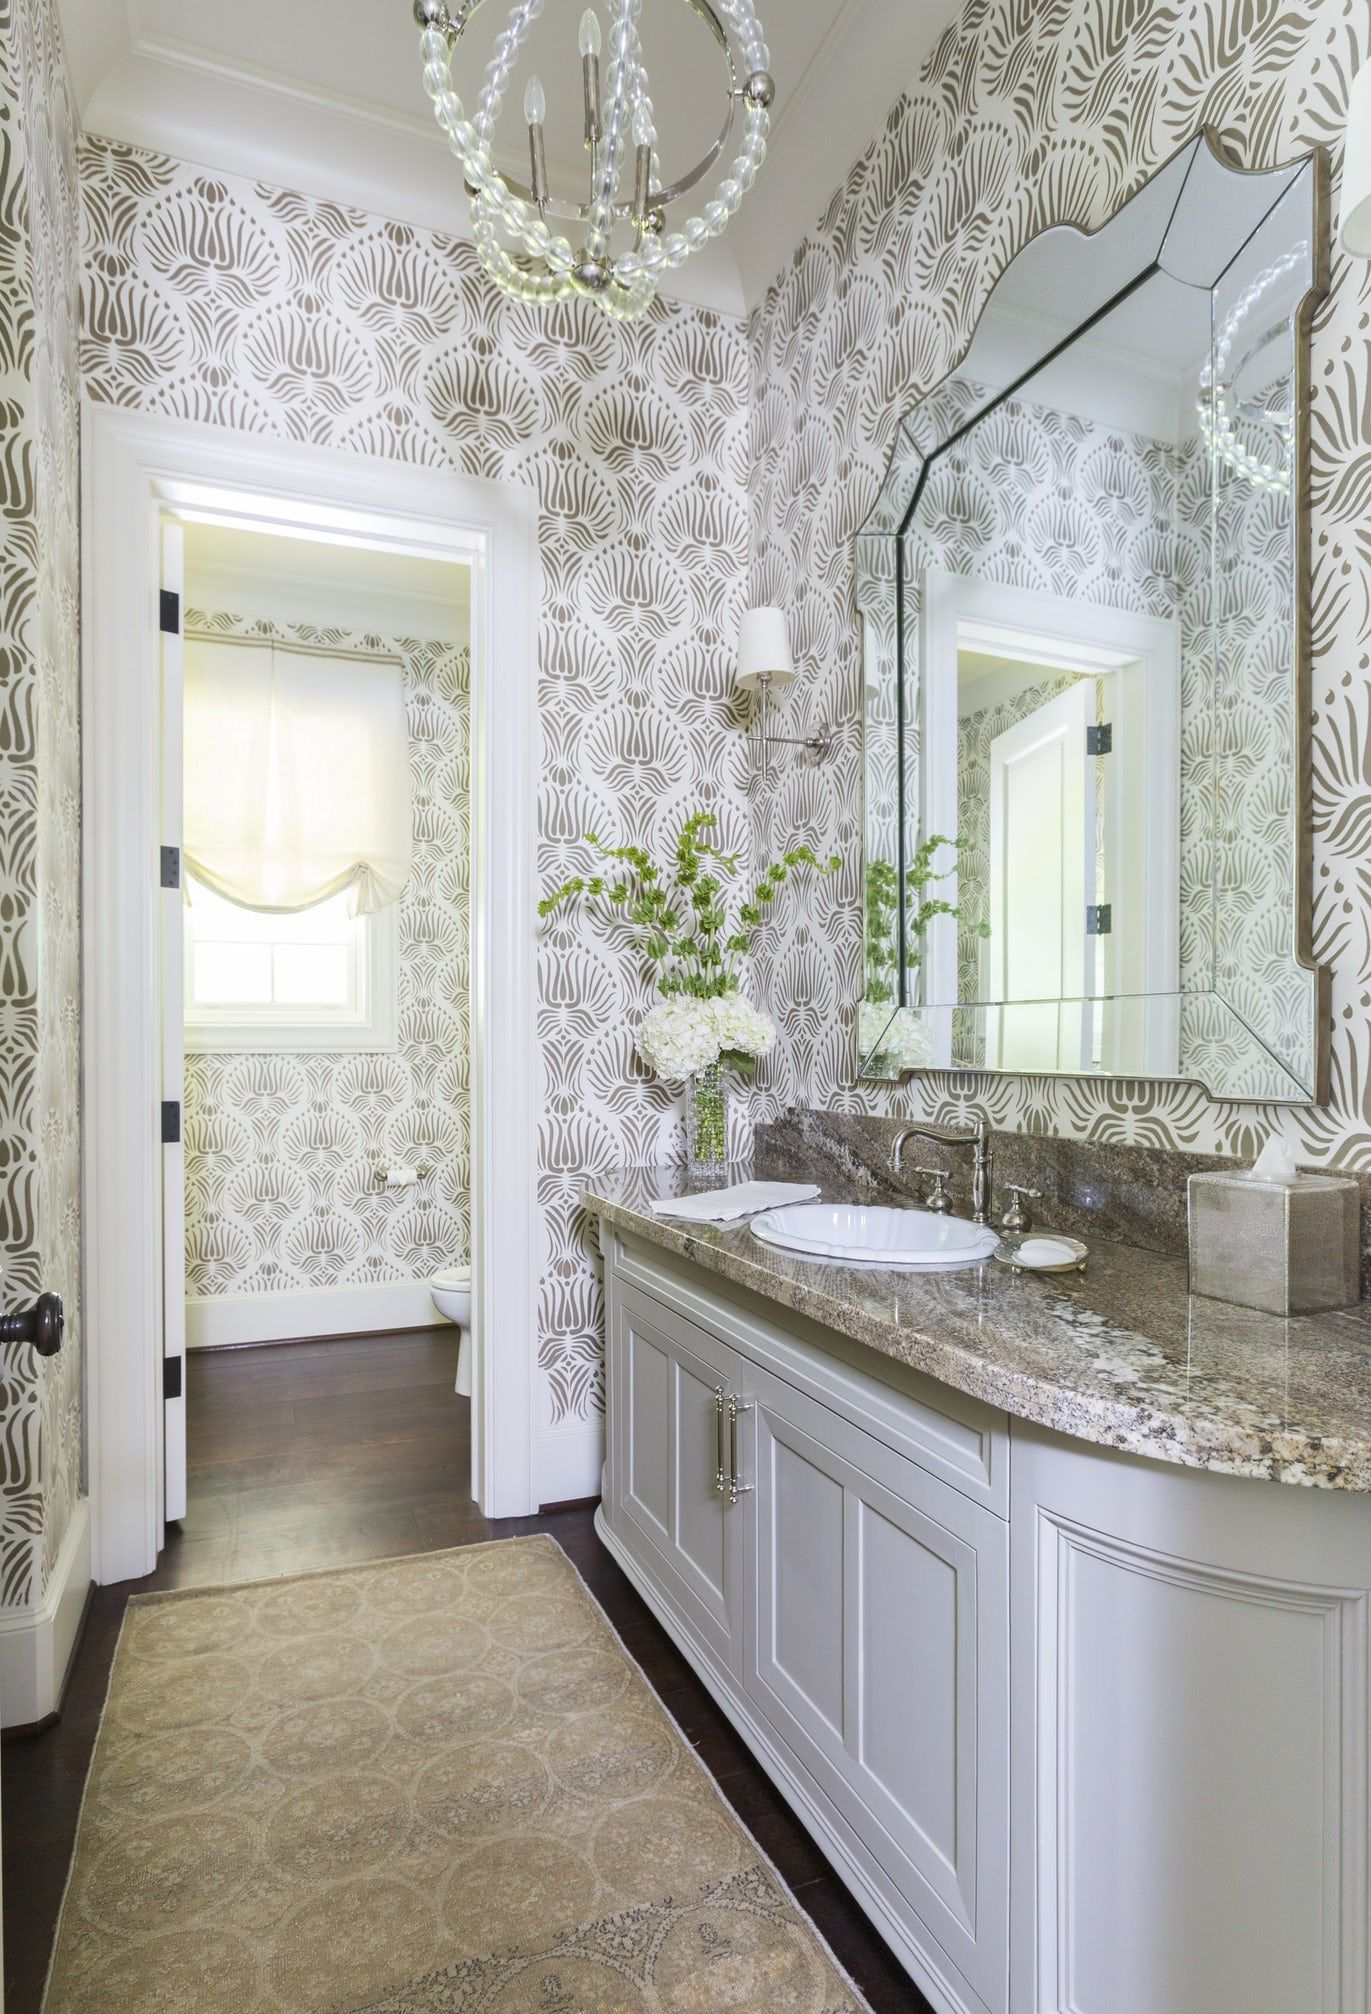 40 Stunning Powder Room Ideas - Half-Bath Decor & Design Photos